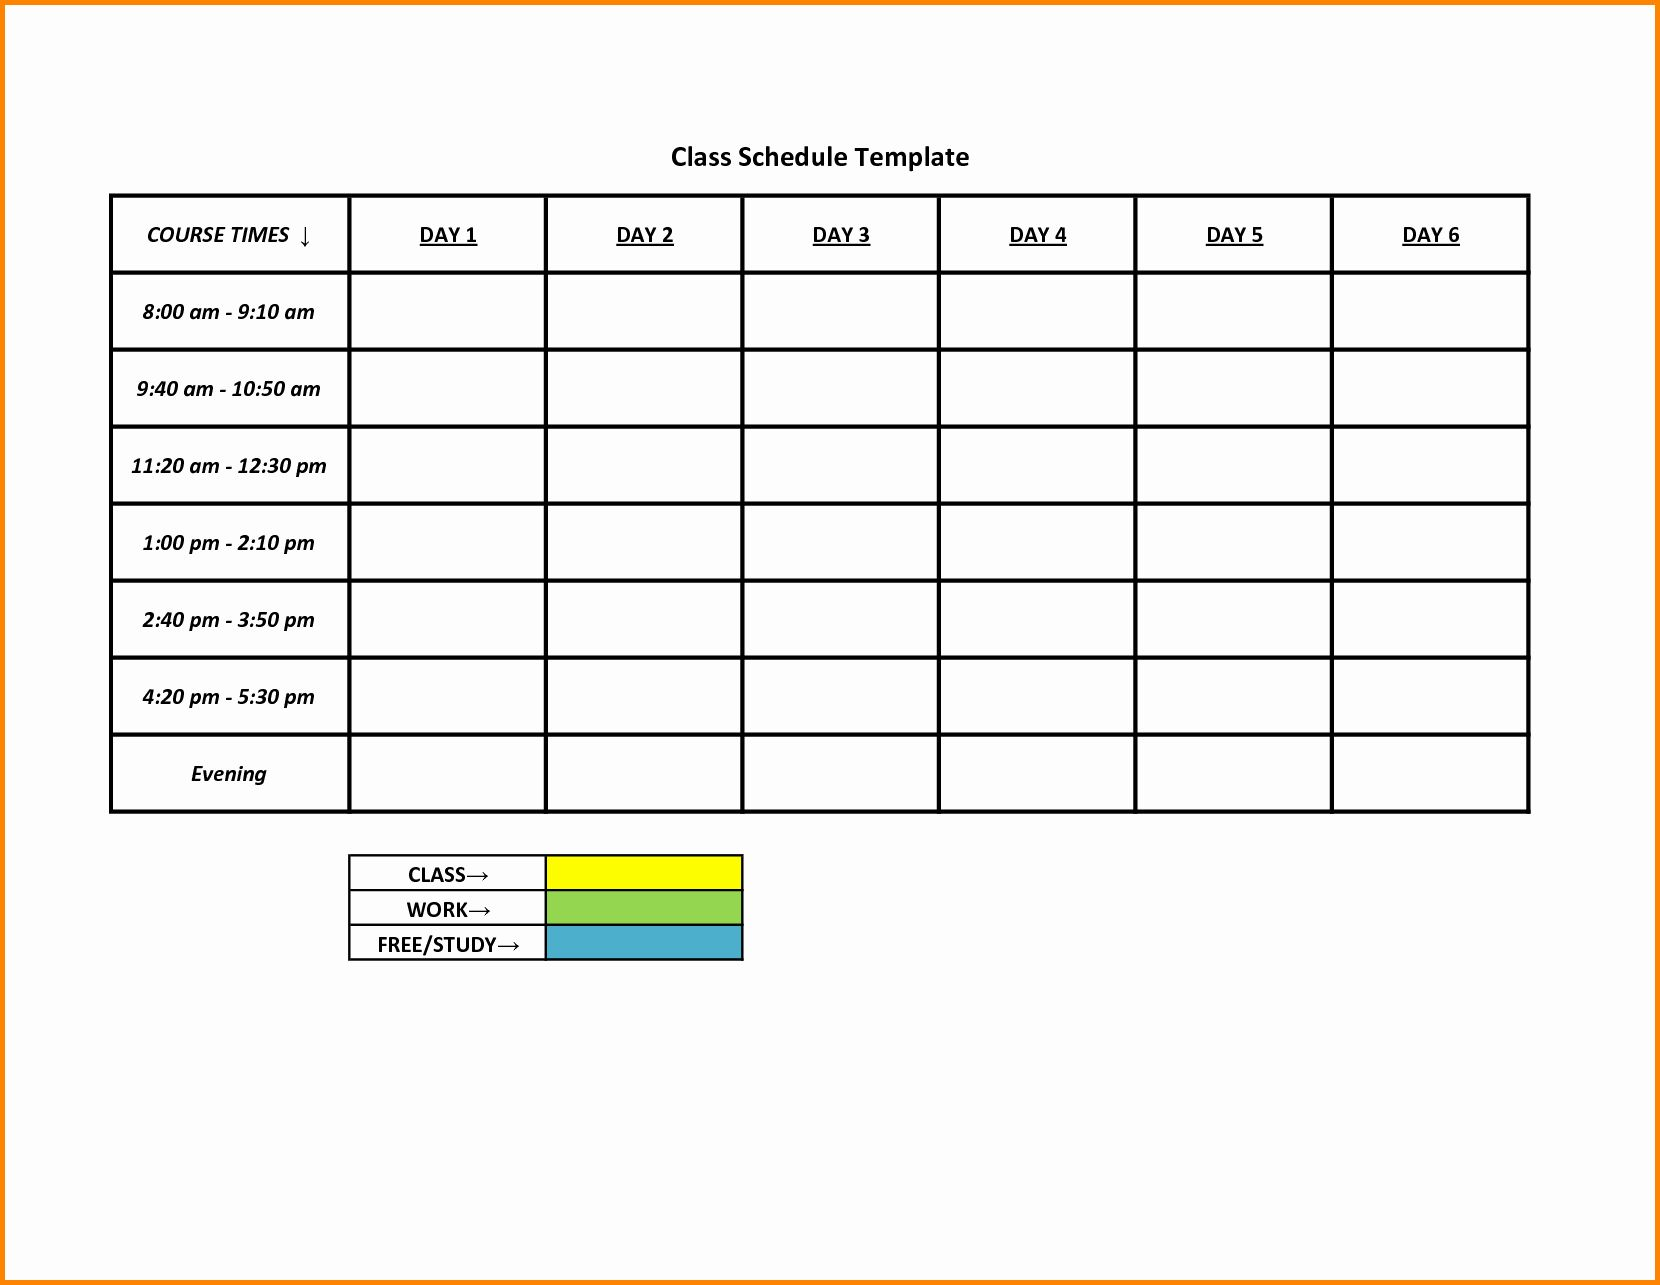 Blank Weekly Schedule Template Unique Weekly College Schedule Blank Weekly Shift Schedule Class Schedule Template Schedule Template Monthly Schedule Template